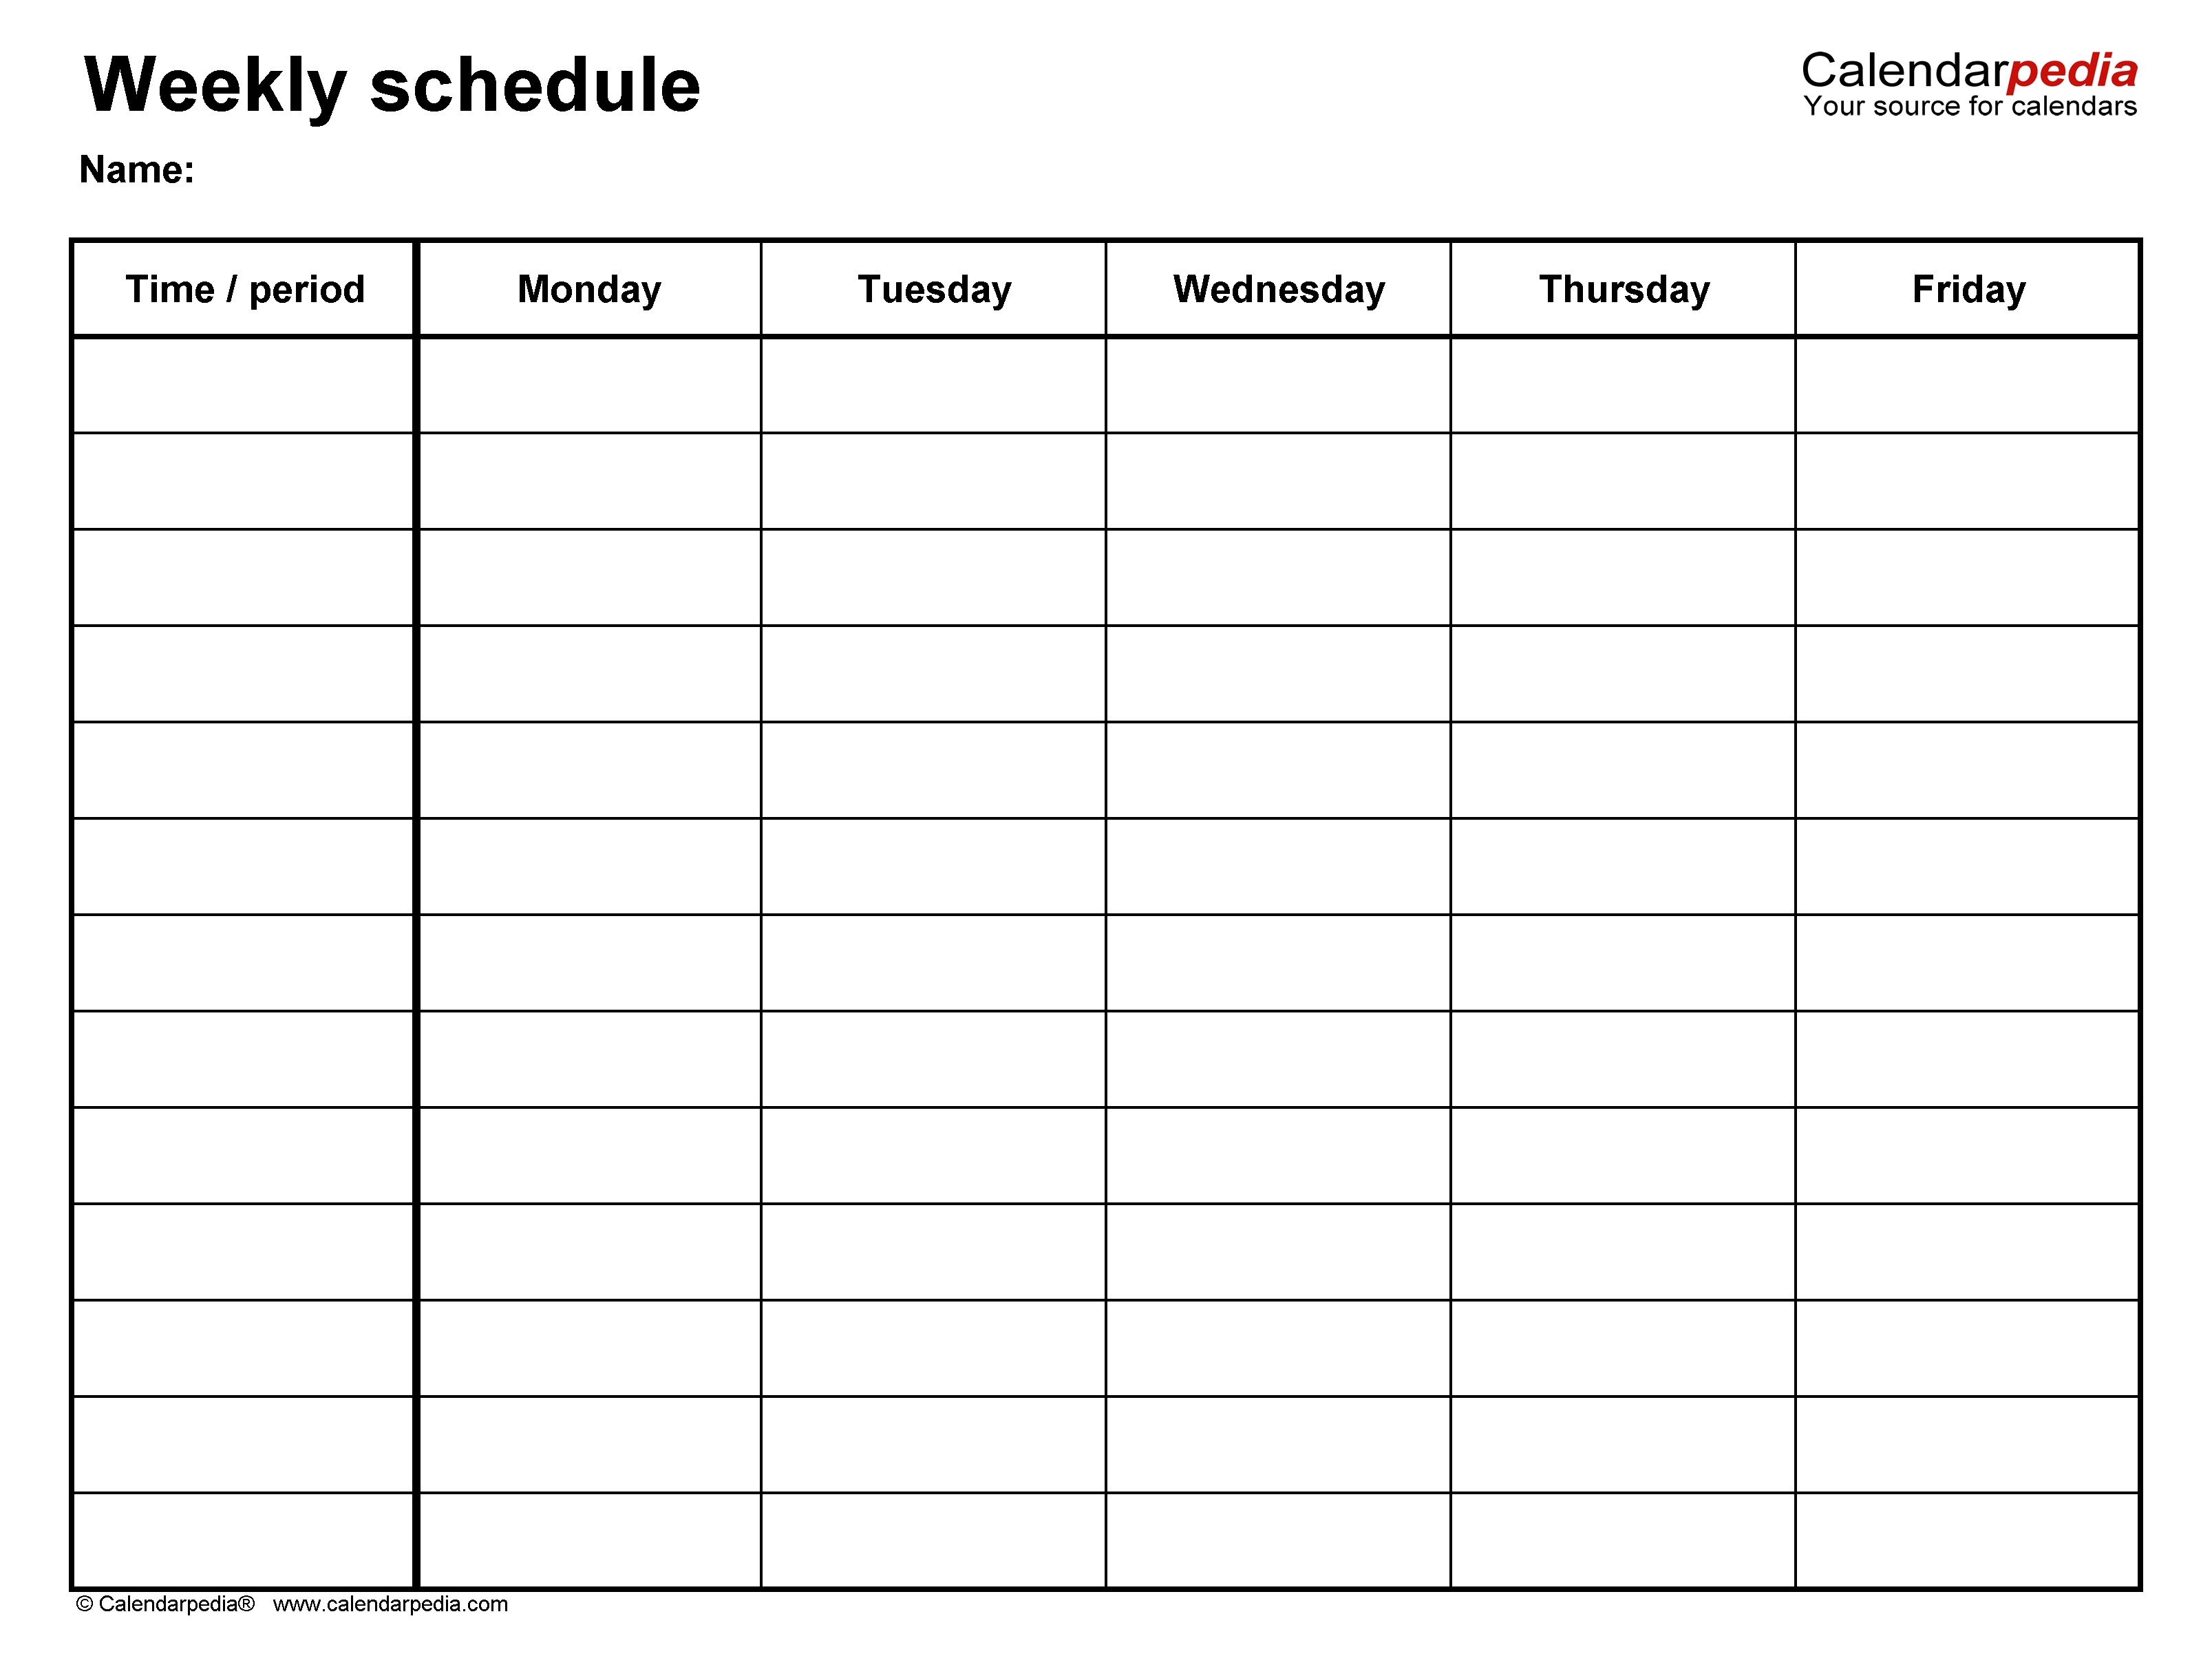 Free Weekly Schedule Templates For Word - 18 Templates-Blank 7 Day Calendar Template